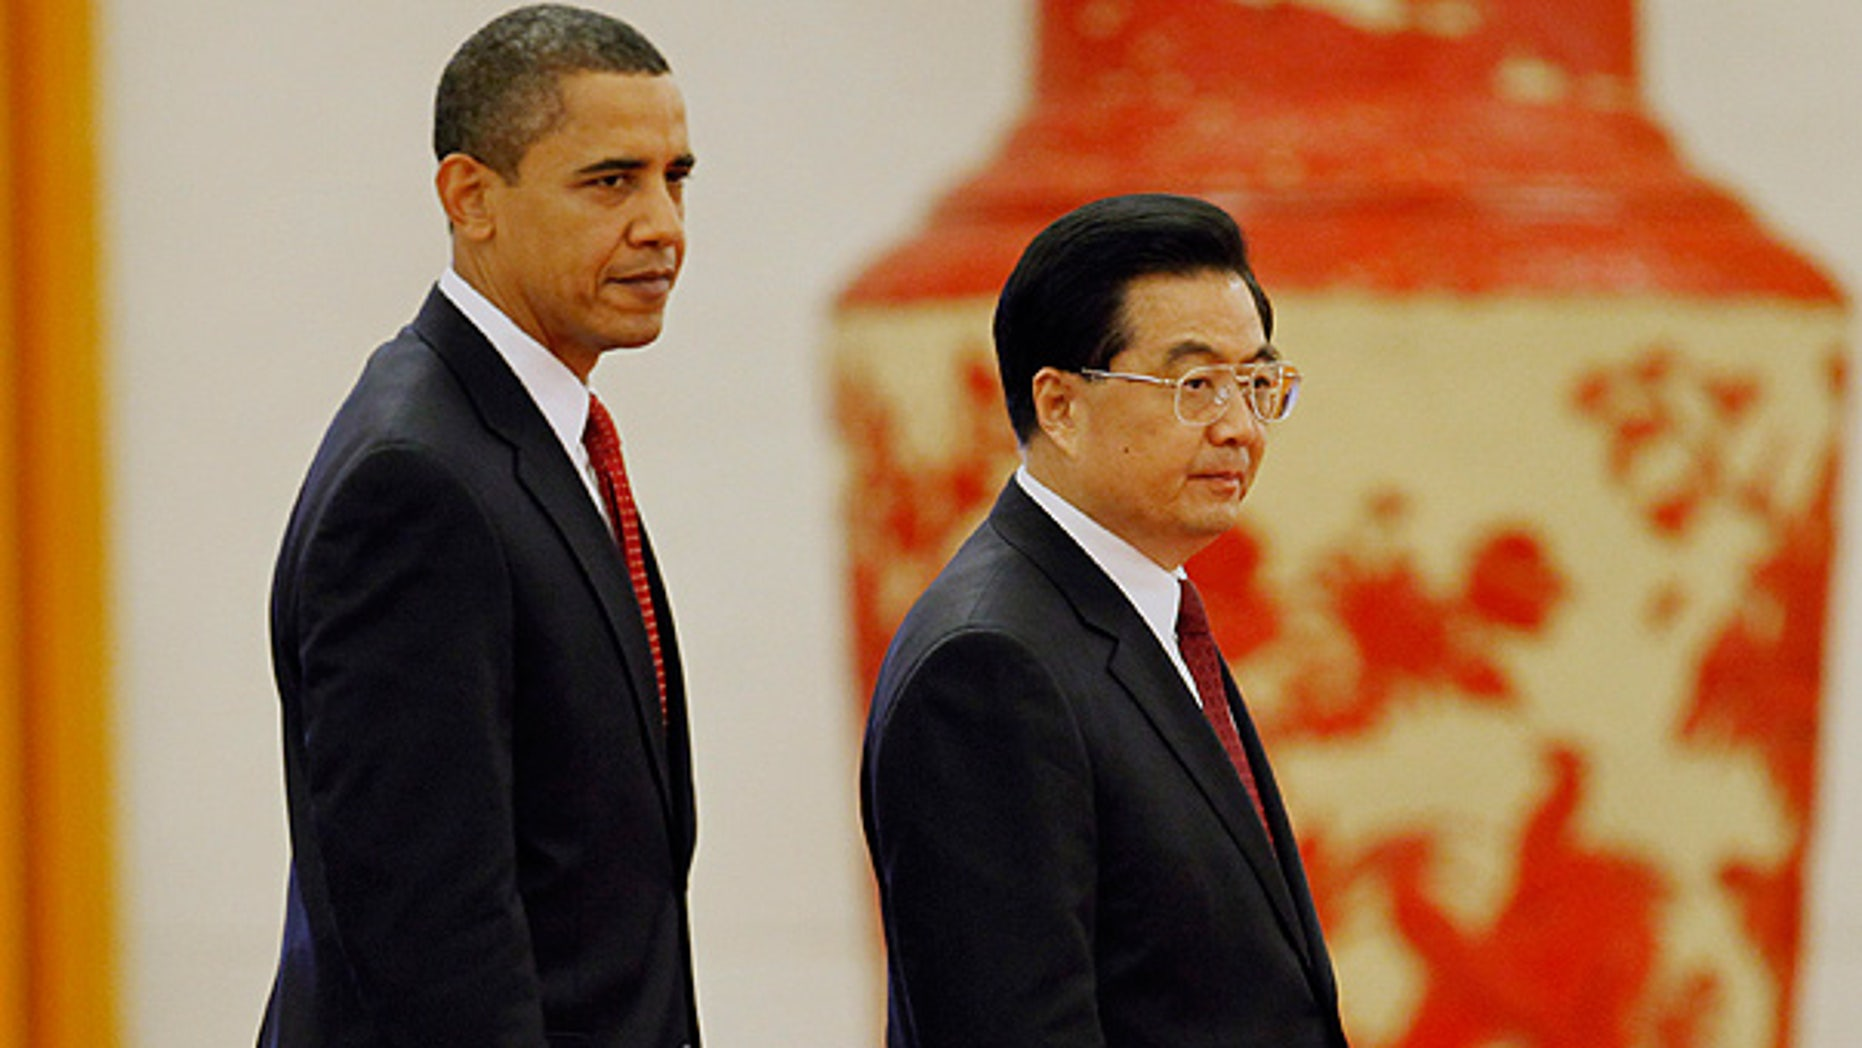 Nov. 17, 2010: President Obama walks with Chinese President Hu Jintao during a welcome ceremony at the Great Hall of the People in Beijing.